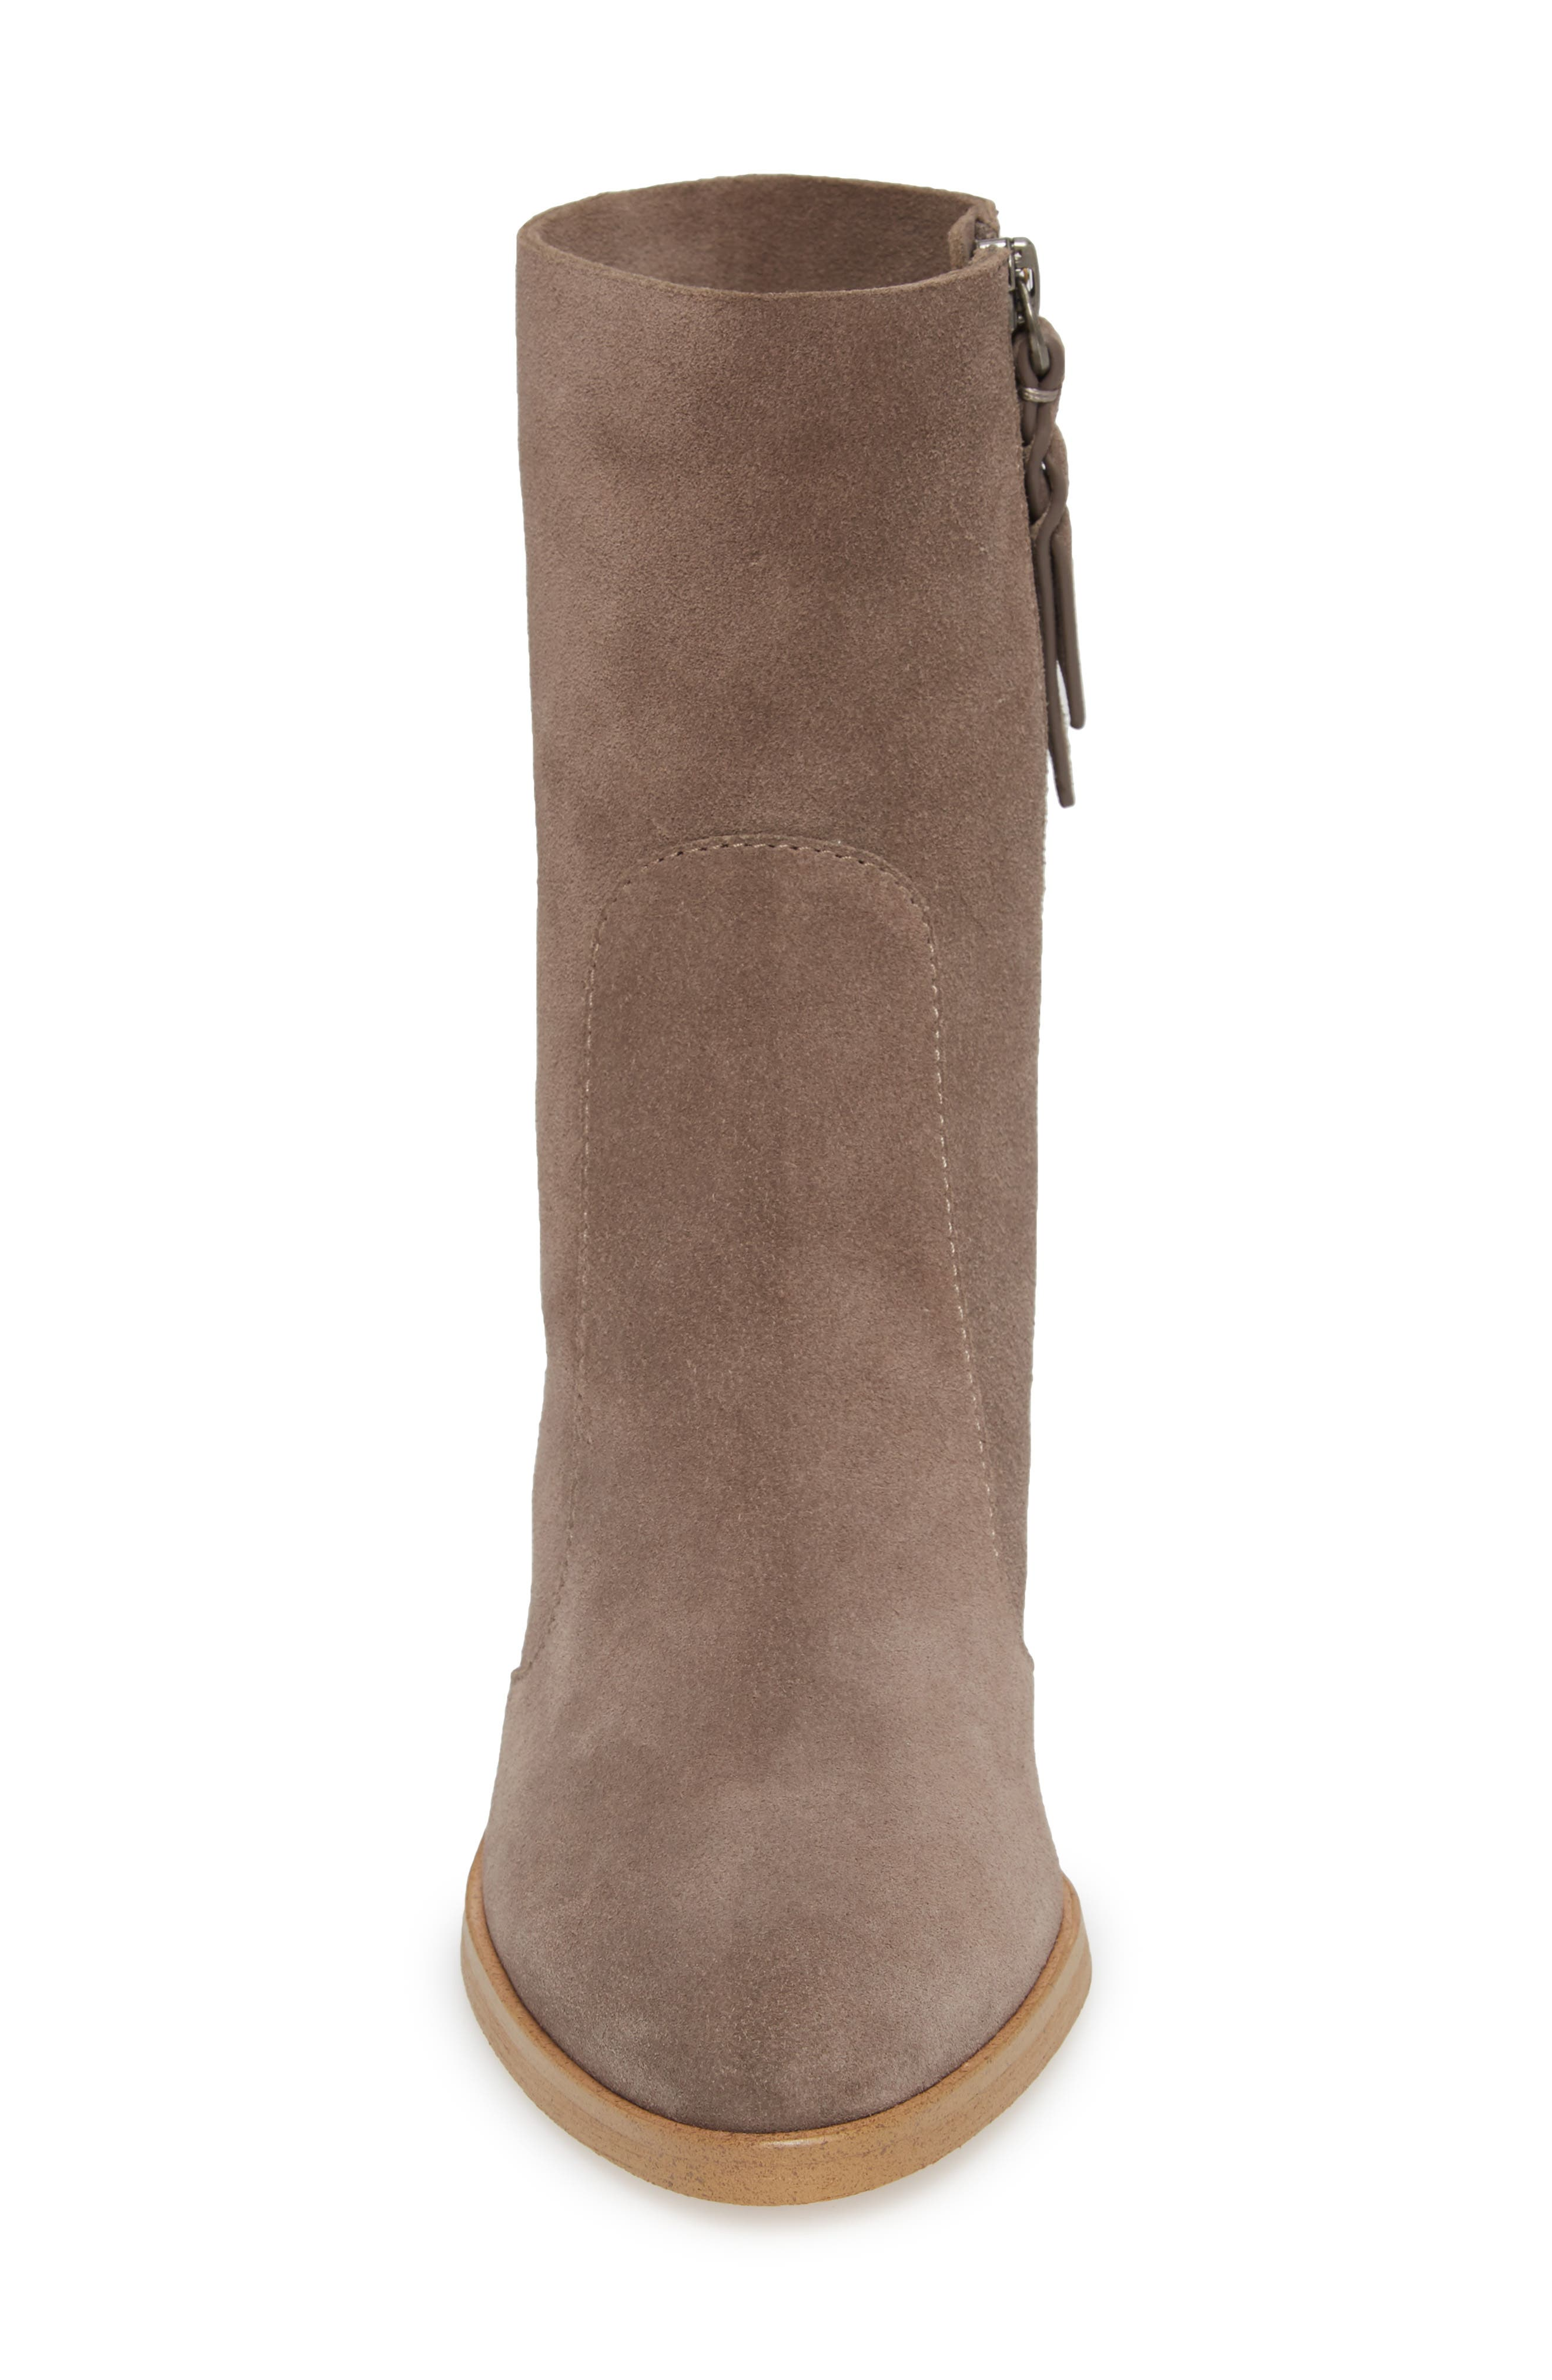 Roselyn II Almond Toe Bootie,                             Alternate thumbnail 4, color,                             029